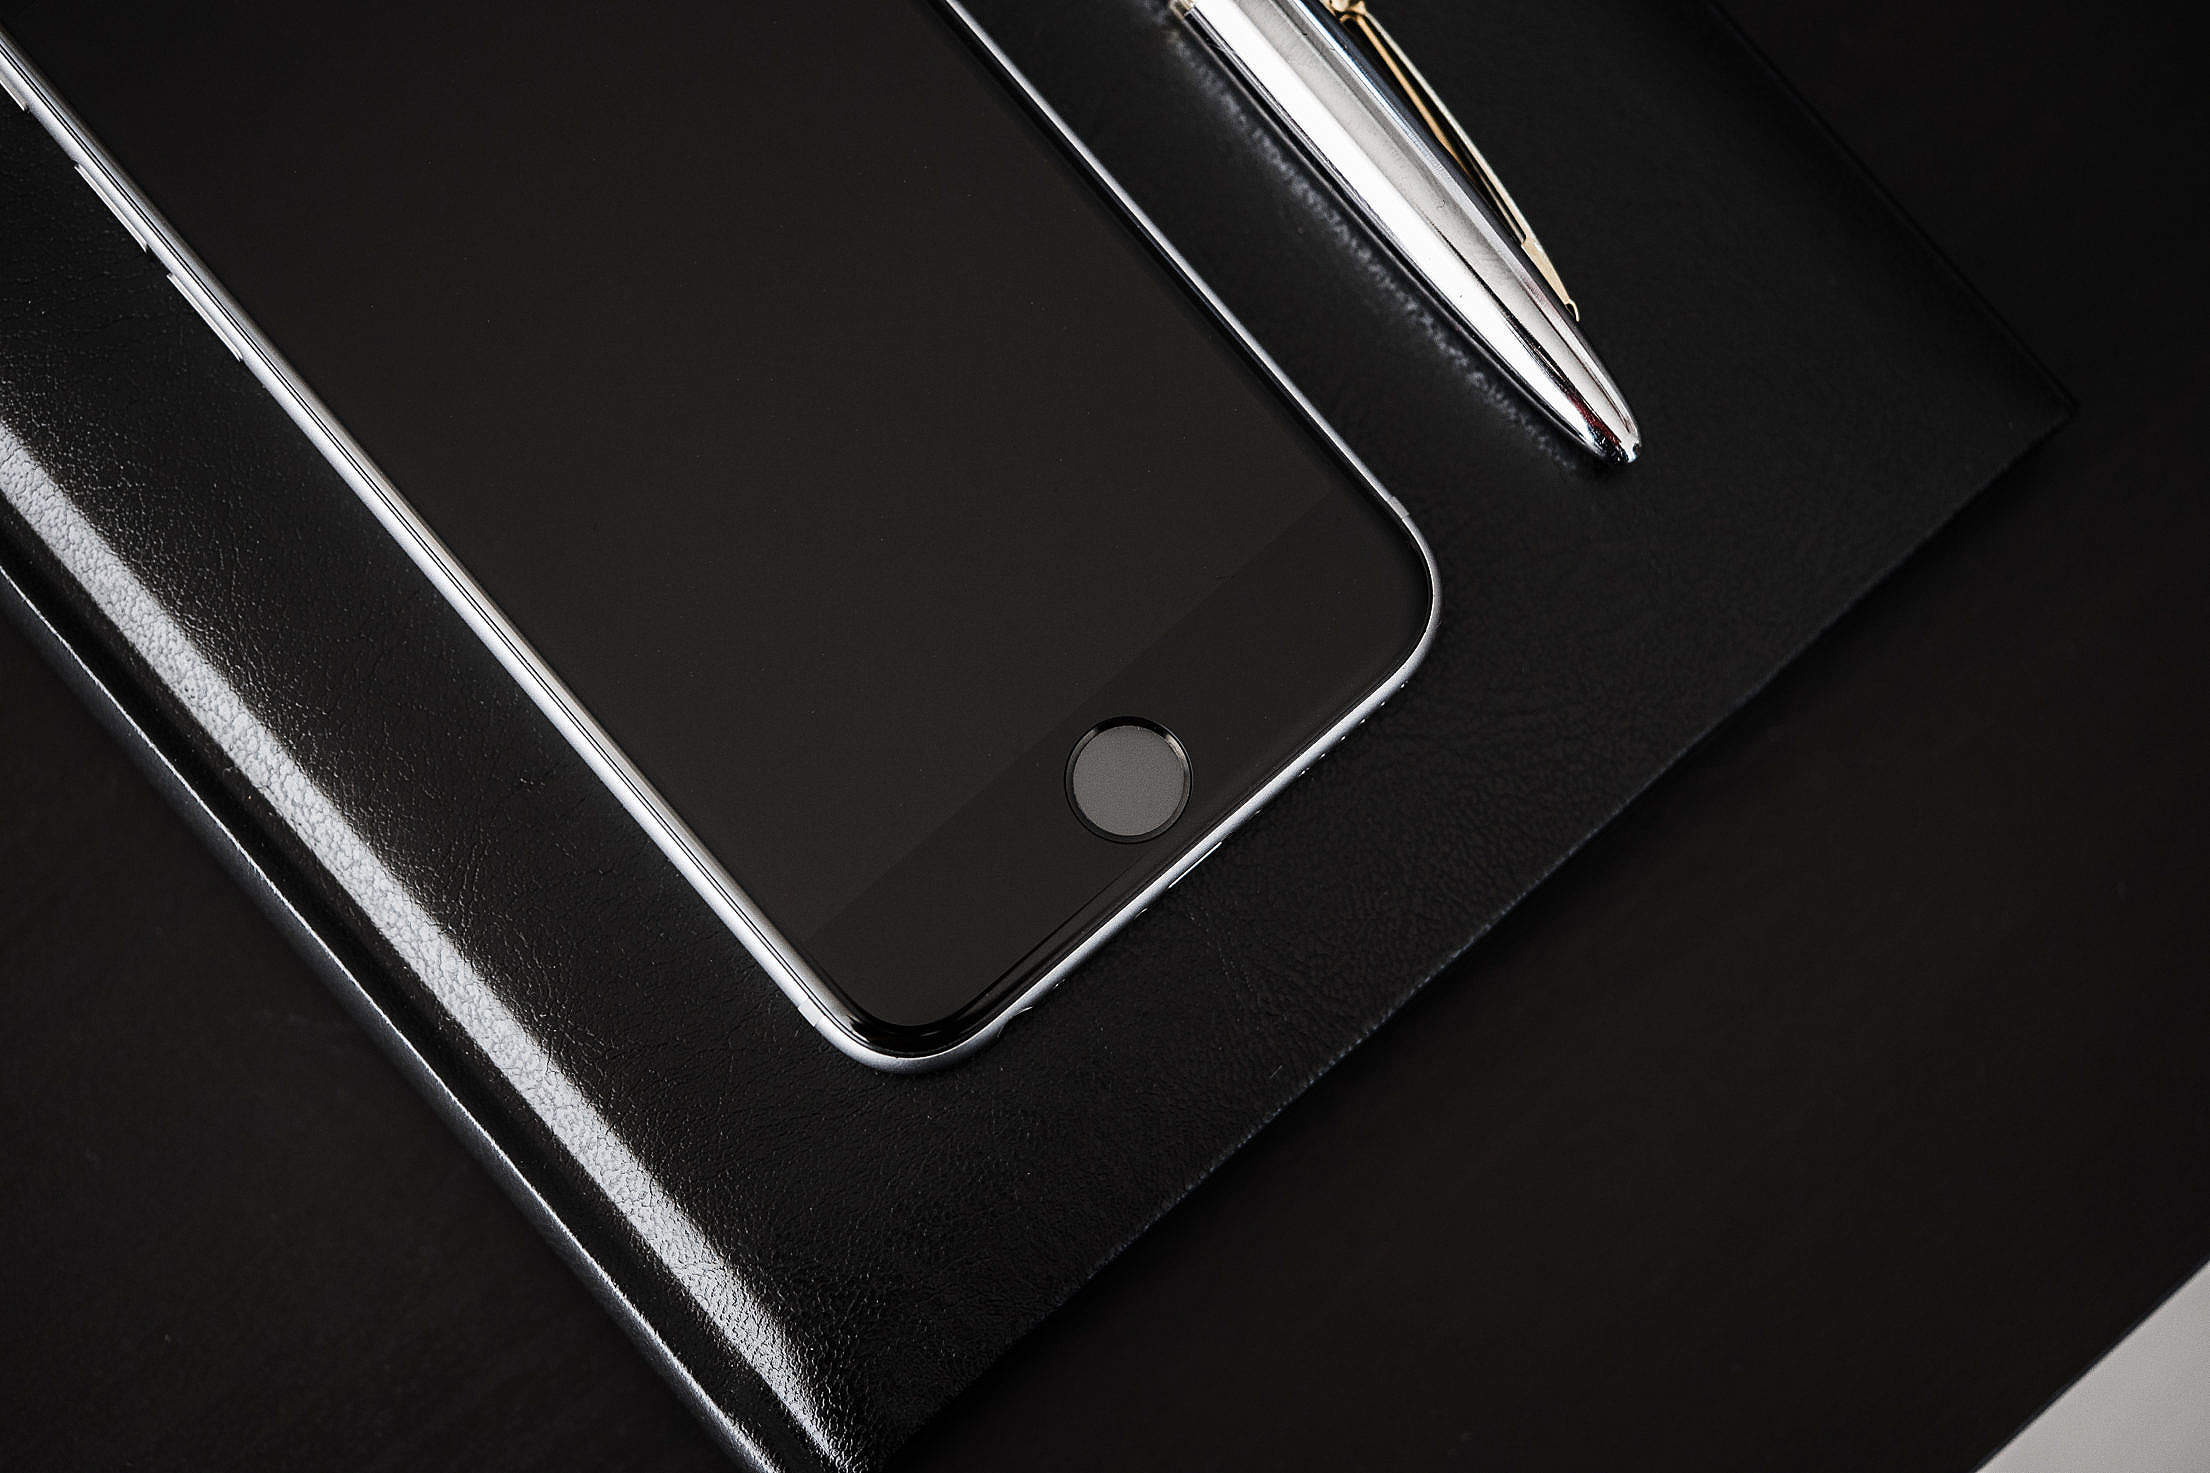 Download Black Desk, Black Diary, Black Smartphone Free Stock Photo